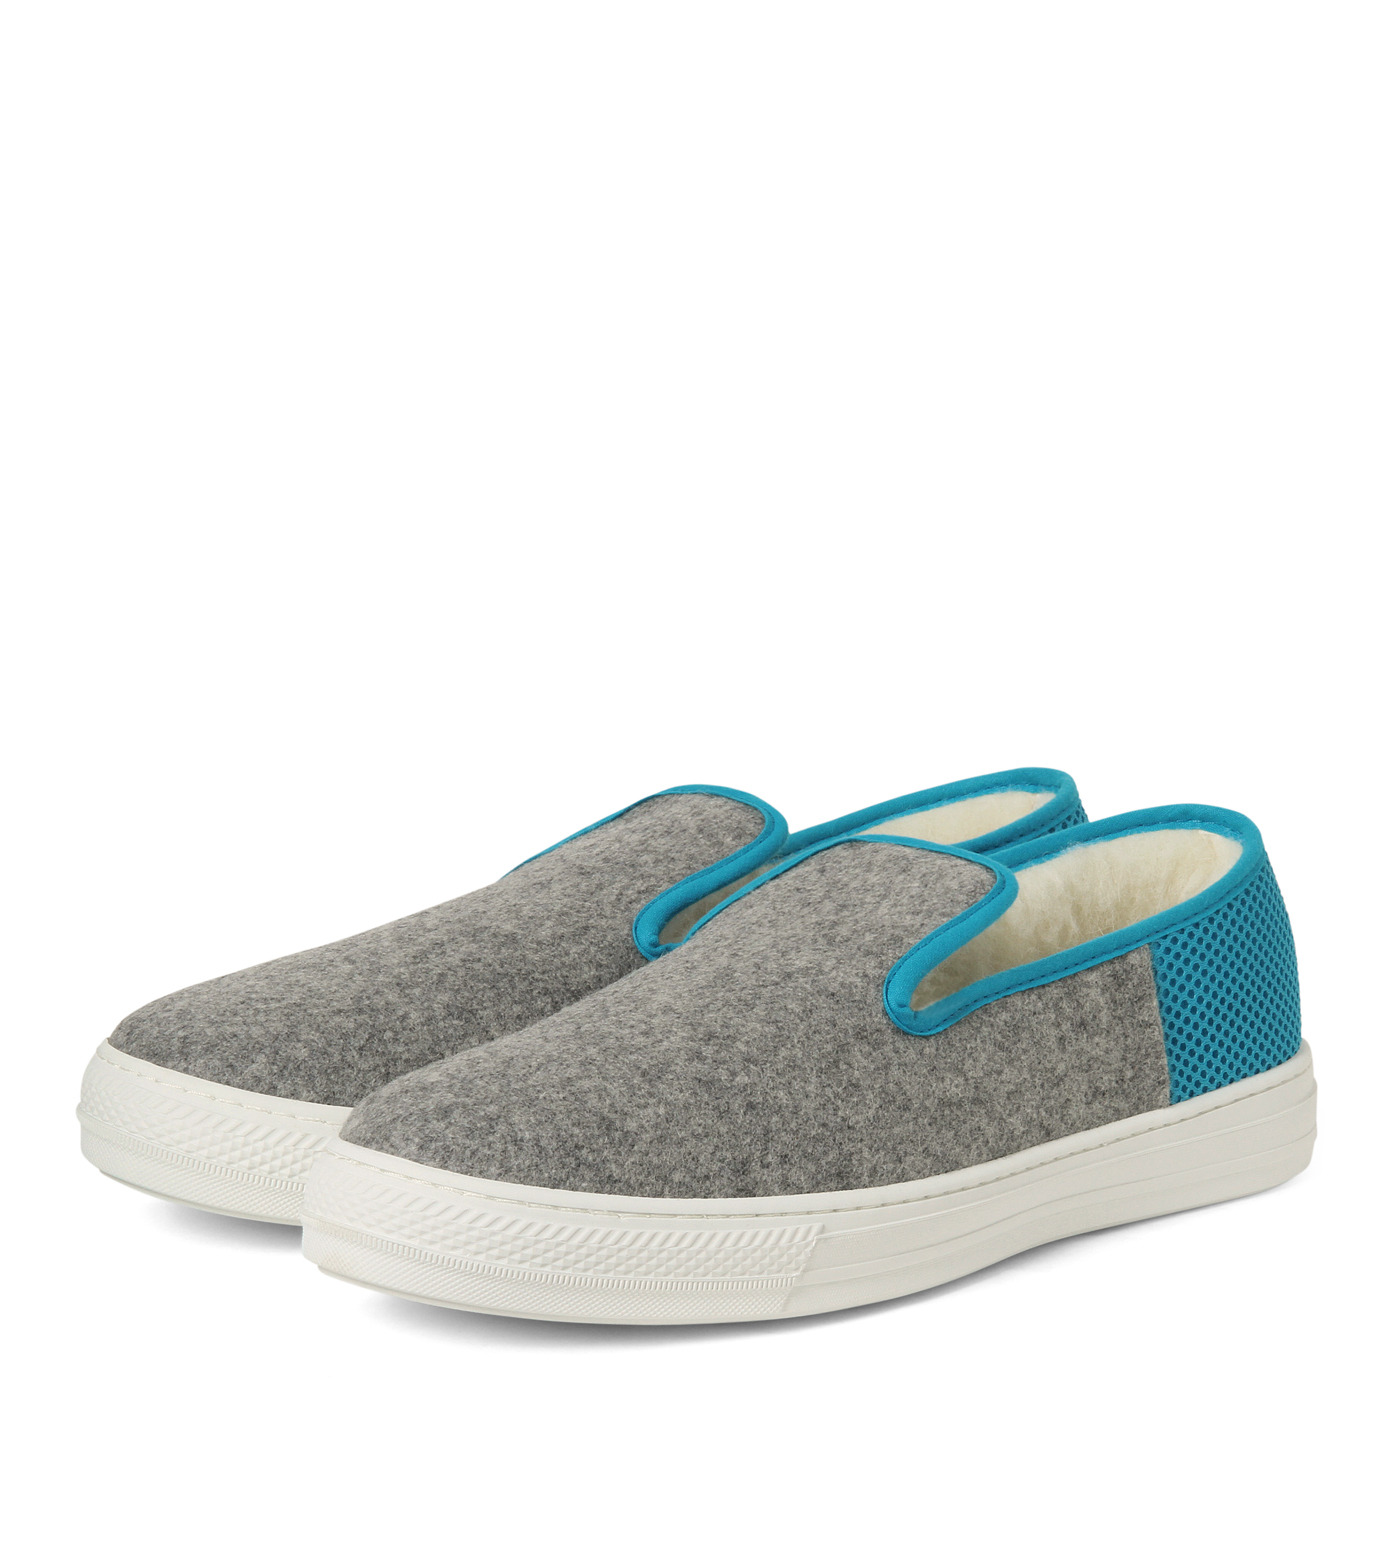 TAISE by SOUSTS(TAISE by SOUSTS)のArsene Turquoise-TURQUOISE(スニーカー/sneaker)-ARSENE-95 拡大詳細画像4